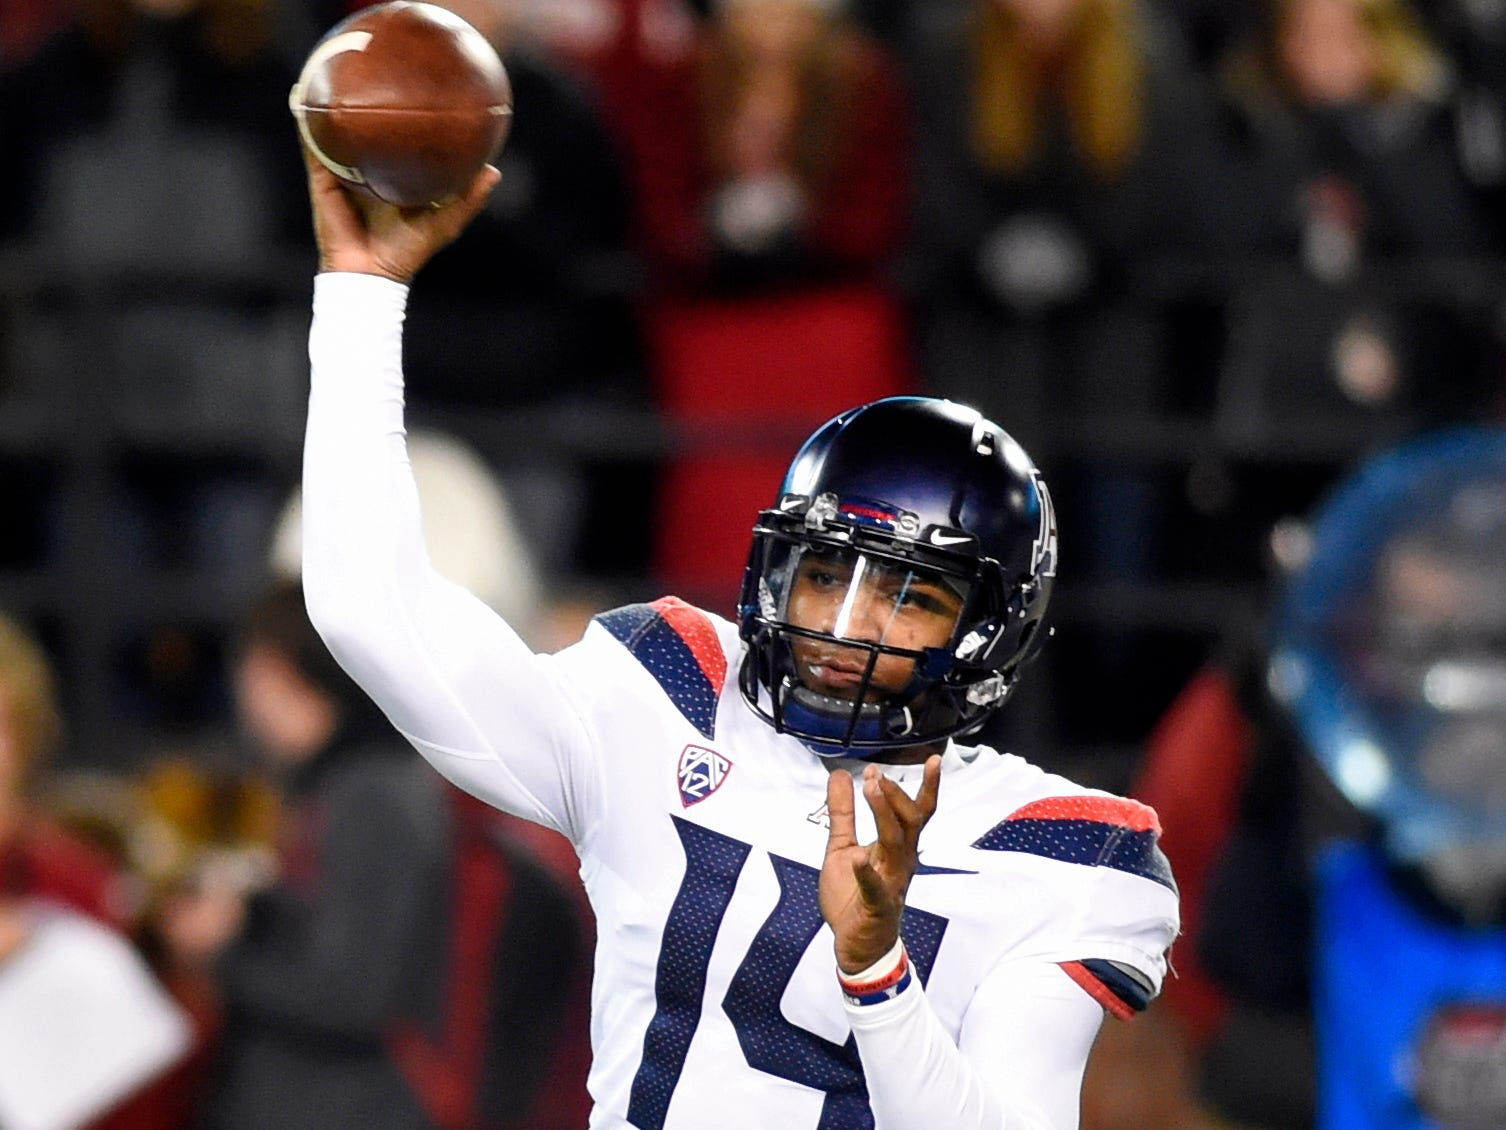 Nov 17, 2018; Pullman, WA, USA; Arizona Wildcats quarterback Khalil Tate (14) throws a football during a game against the Washington State Cougars in the first half at Martin Stadium. Mandatory Credit: James Snook-USA TODAY Sports